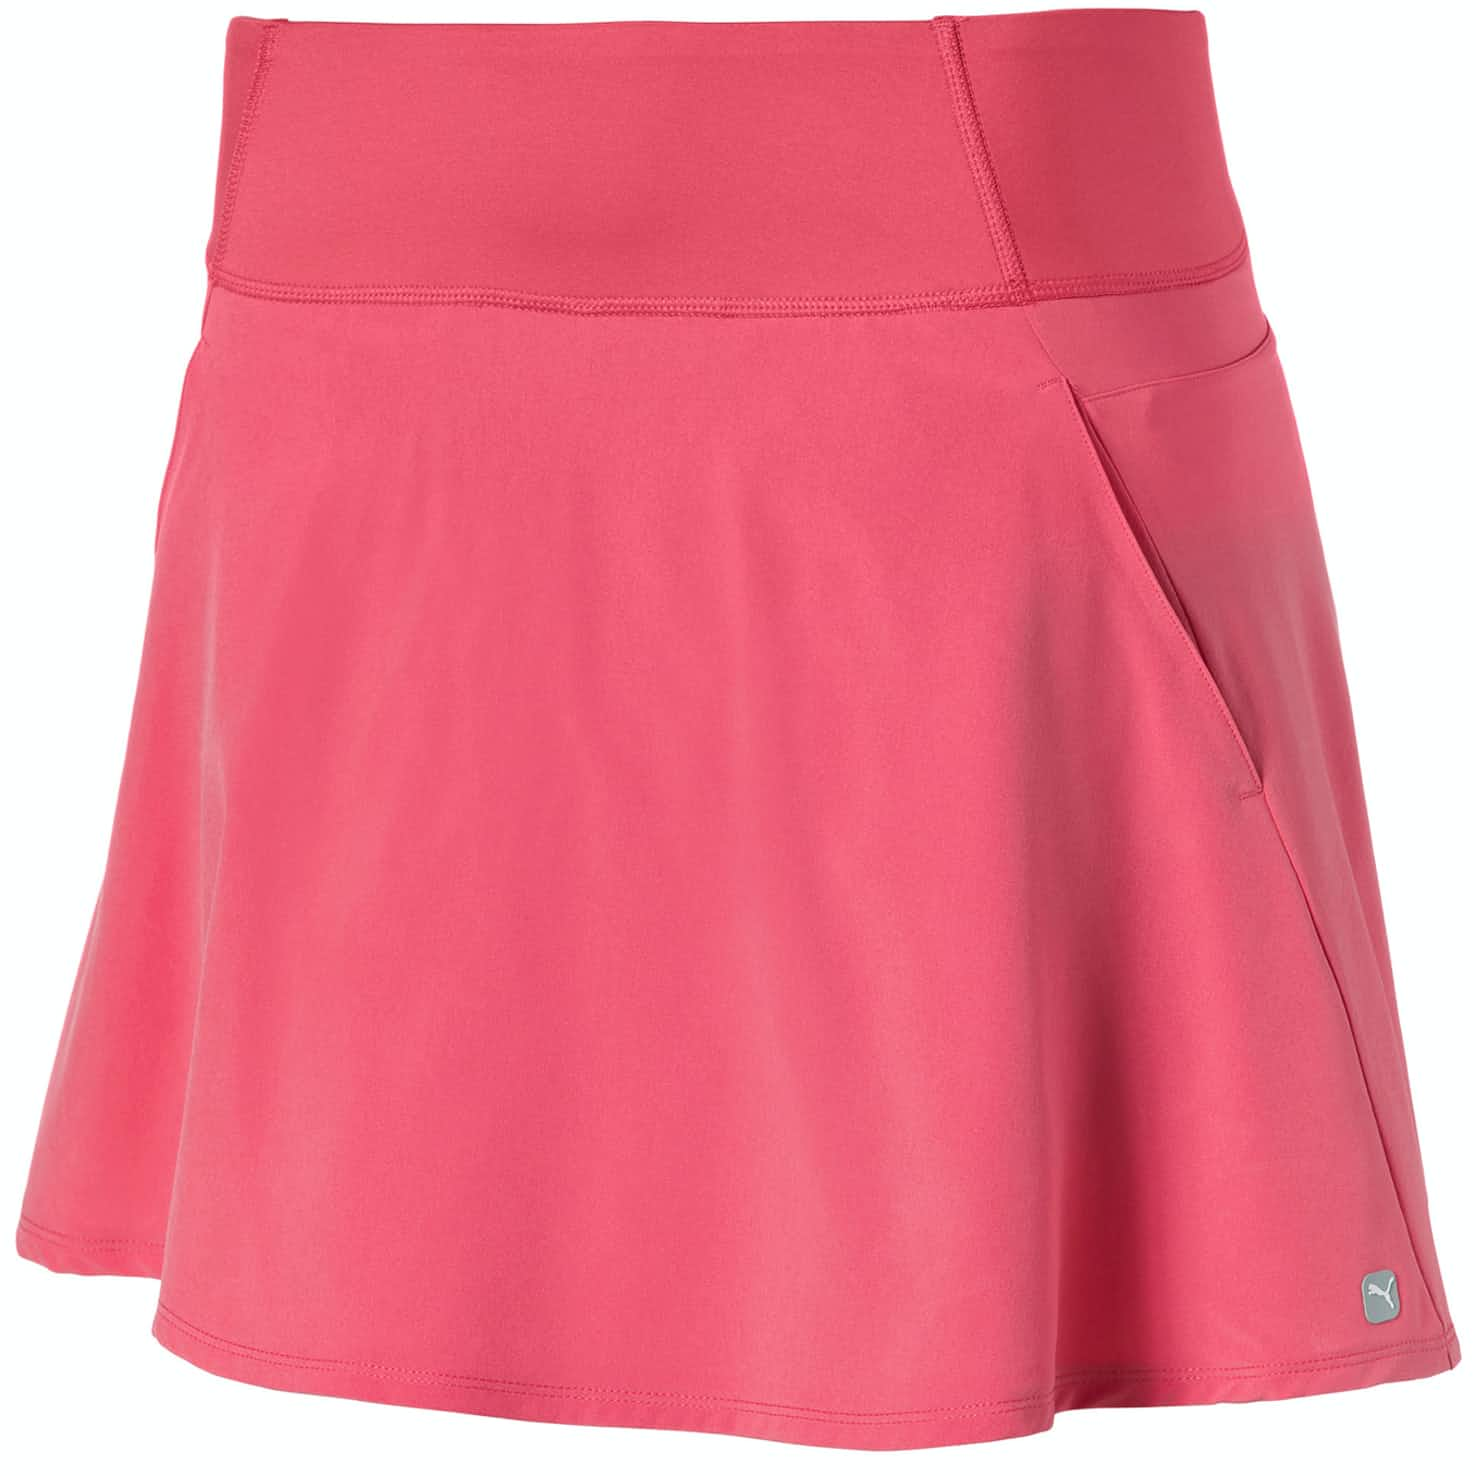 Womens PWRSHAPE Solid Woven Skirt Rapture Rose - SS20